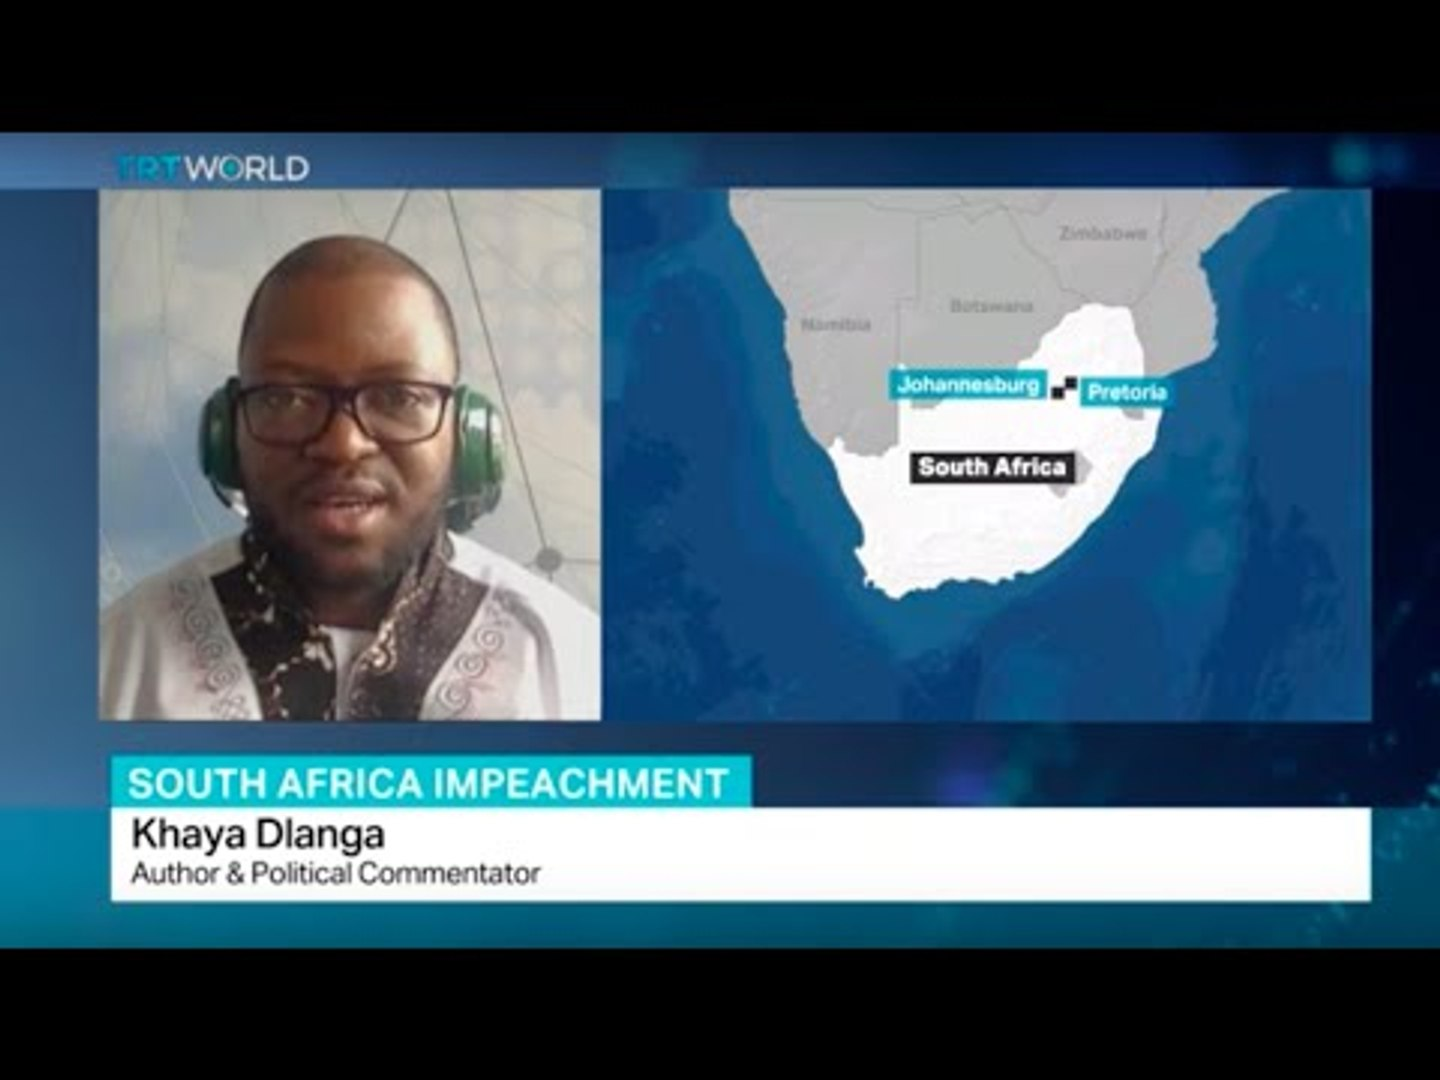 Interview with political commentator Khaya Dlanga on South Africa impeachment